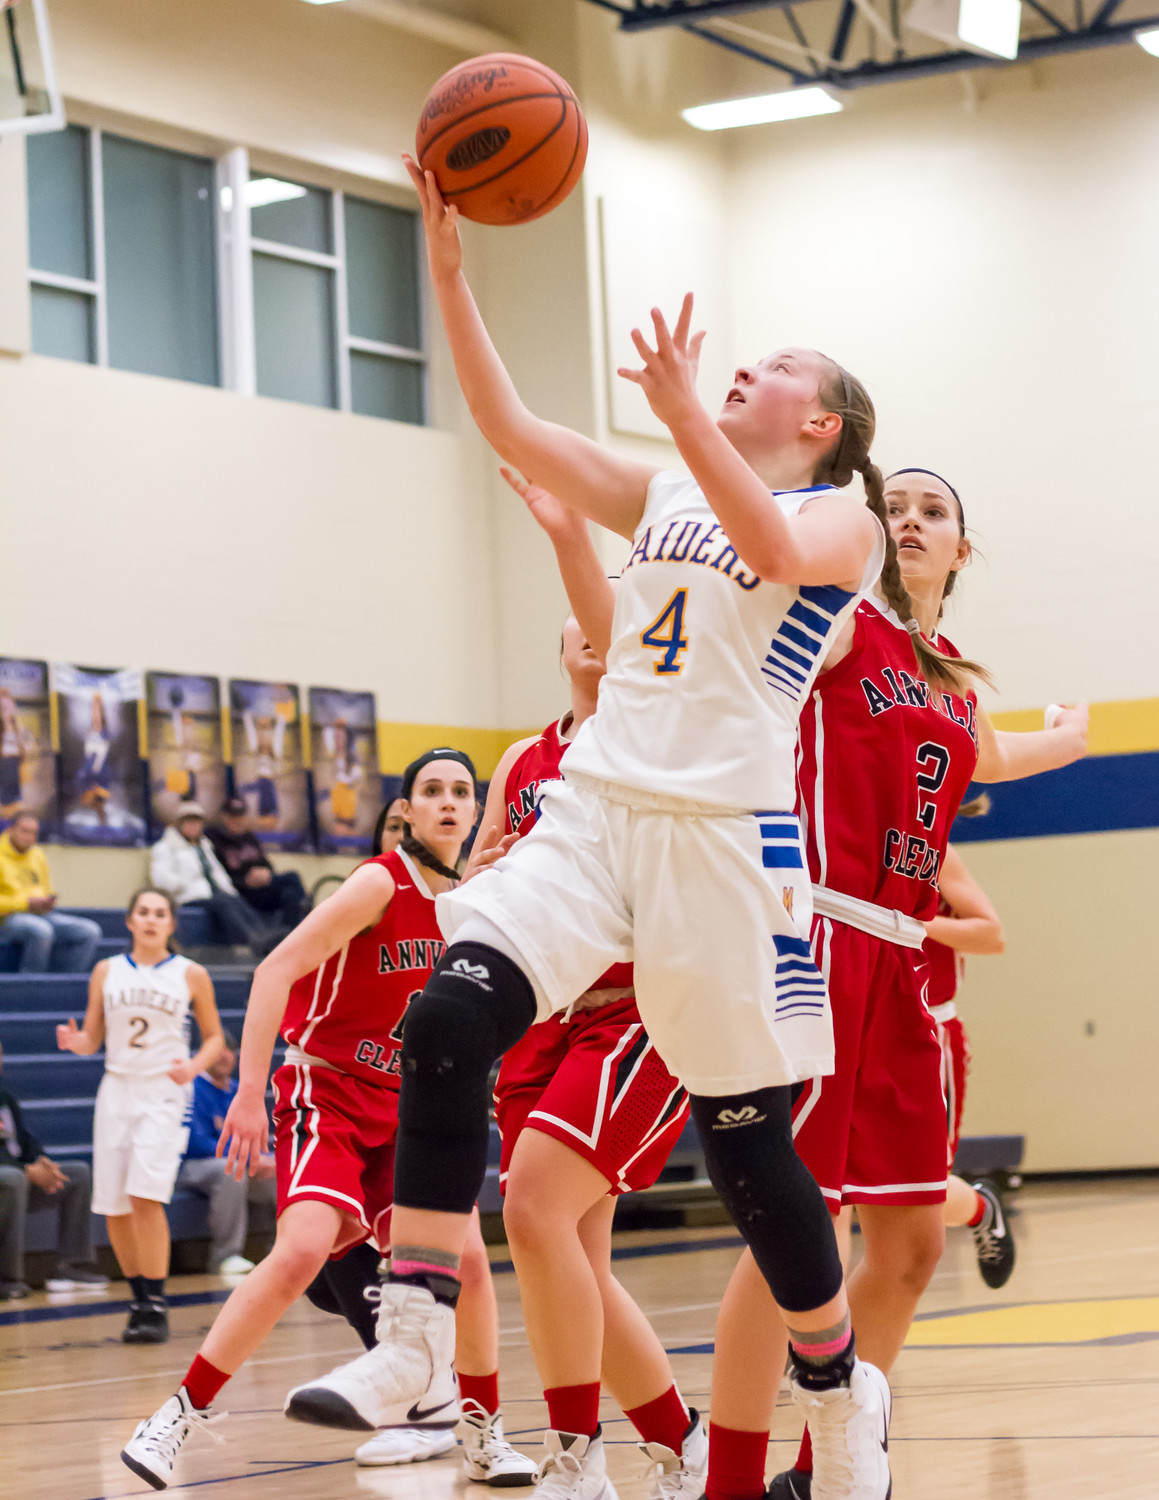 Sophomore Kate Fitzpatrick drives toward the basket vs. Annville-Cleona on Thursday.